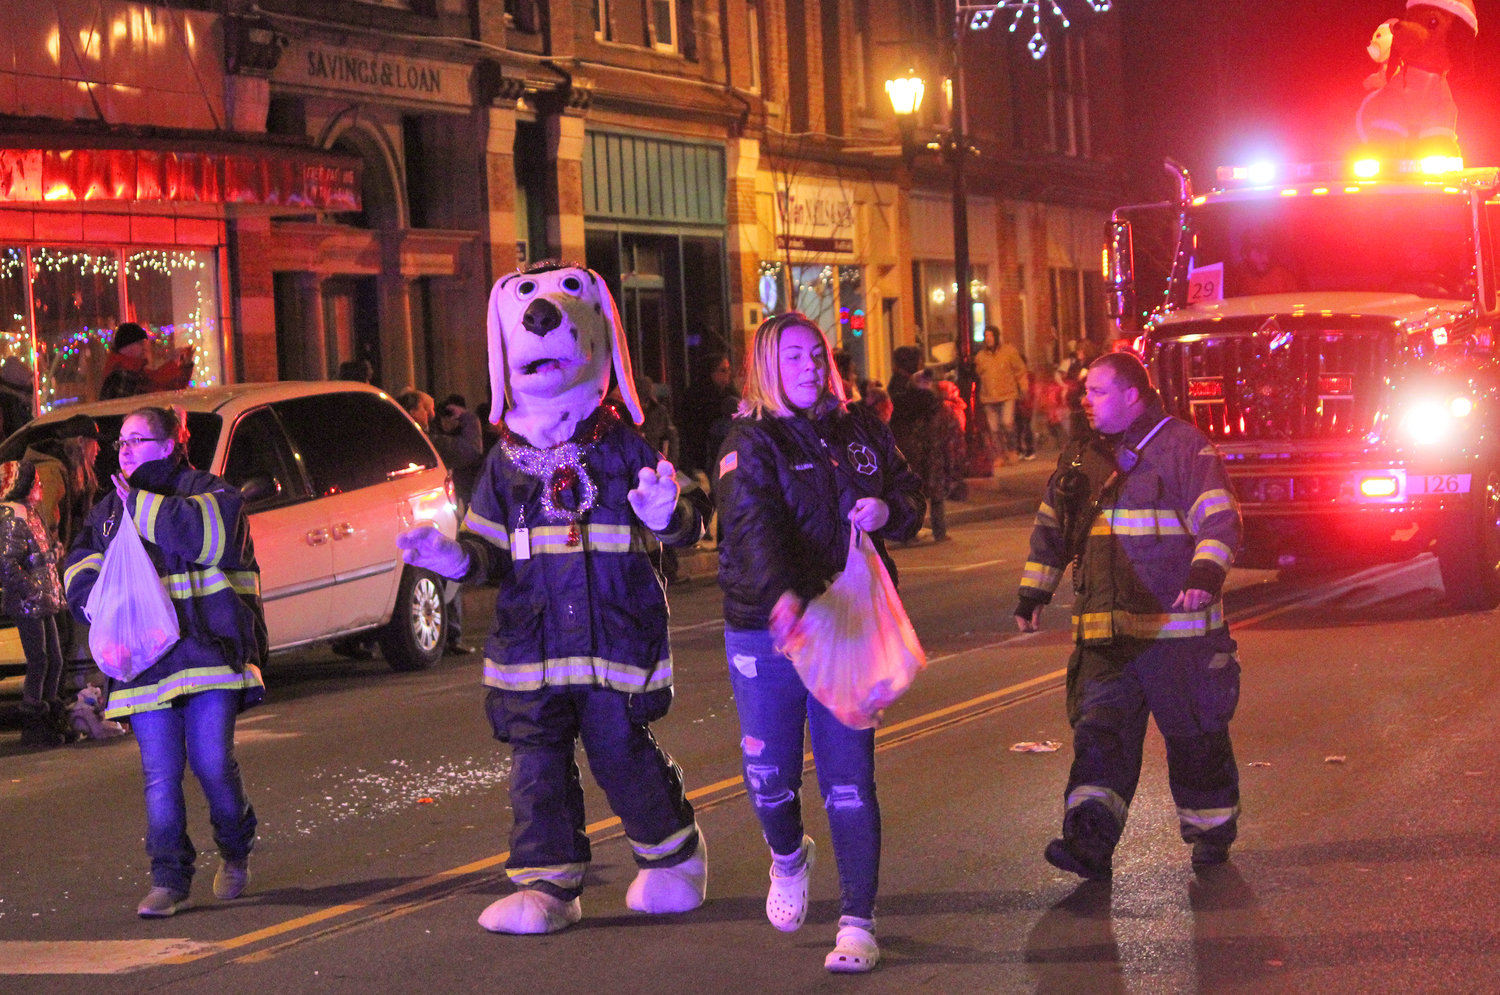 SEASON OF GIVING — The Canastota Fire Department hands out candy for the kids at the second annual Canastota Parade of Lights on Saturday, Nov. 30.